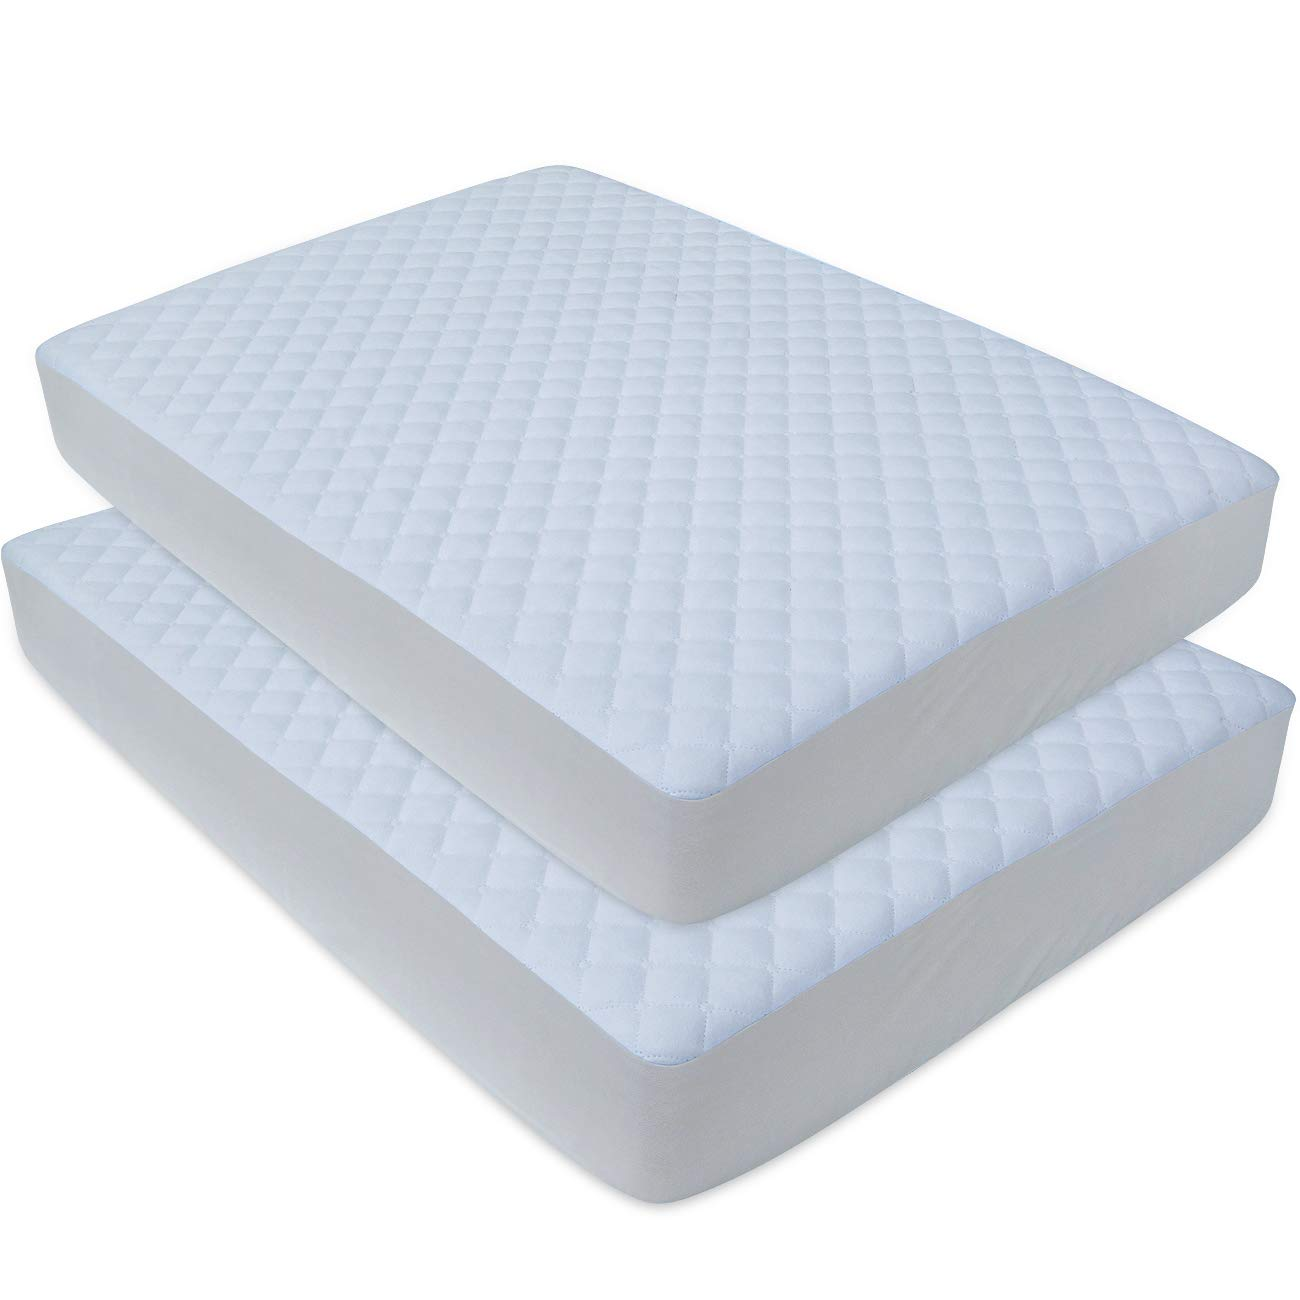 BlueSnail Waterproof Quilted Pack N Play Mattress Cover - Fits All Baby Portable Mini Cribs, Play Yards and Foldable Mattresses (2 Pack White)